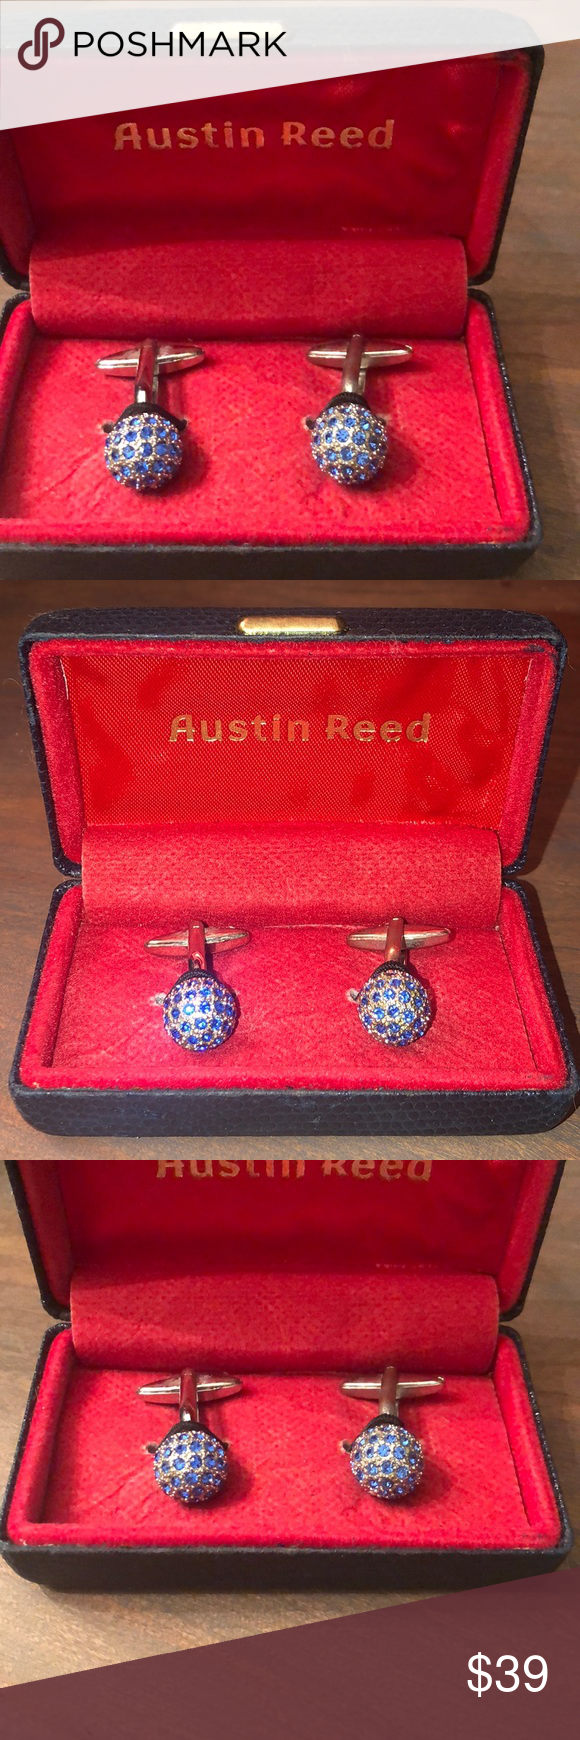 Austin Reed Cuff Links Austin Reed Blue Stone Cufflinks